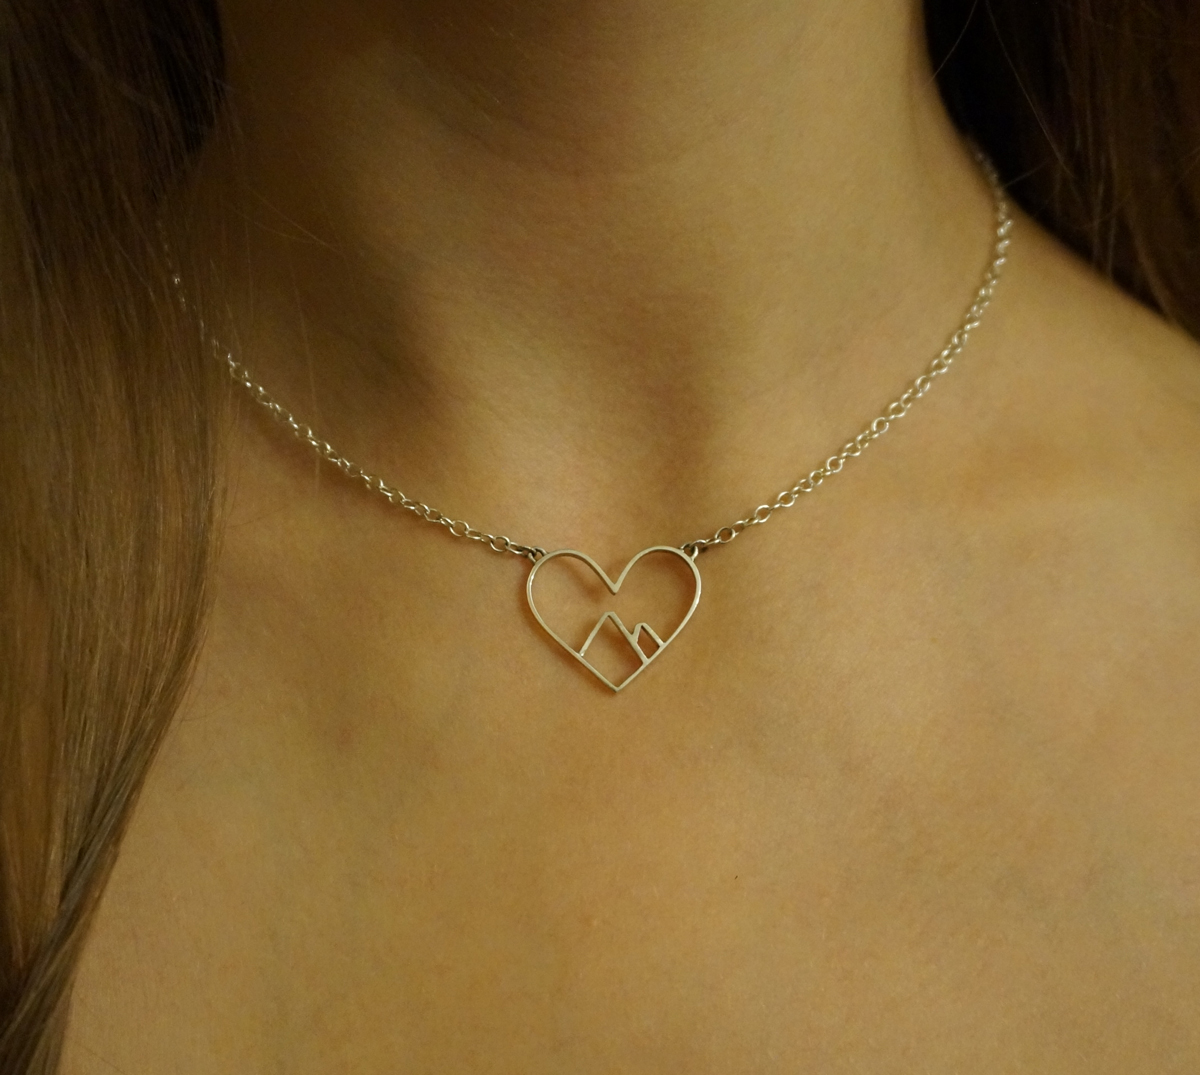 heart-necklace-2